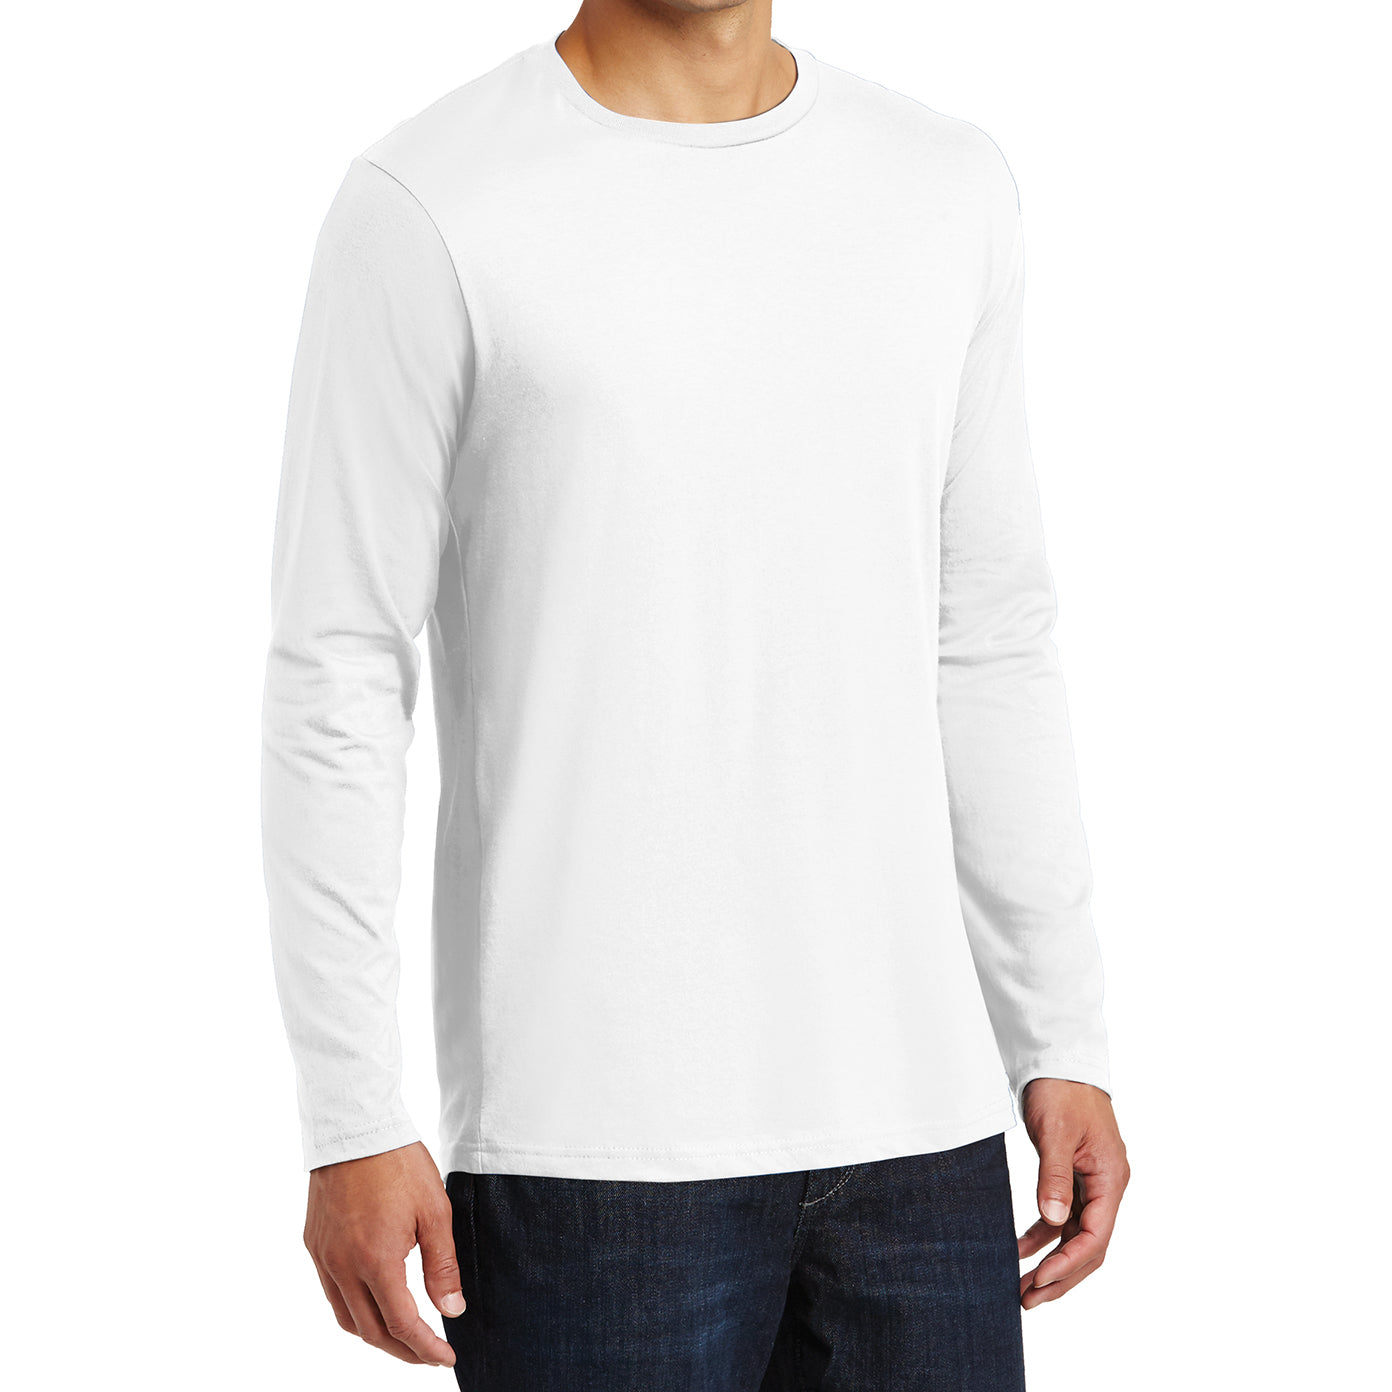 Mens Perfect Weight Long Sleeve Tee - Bright White - Side